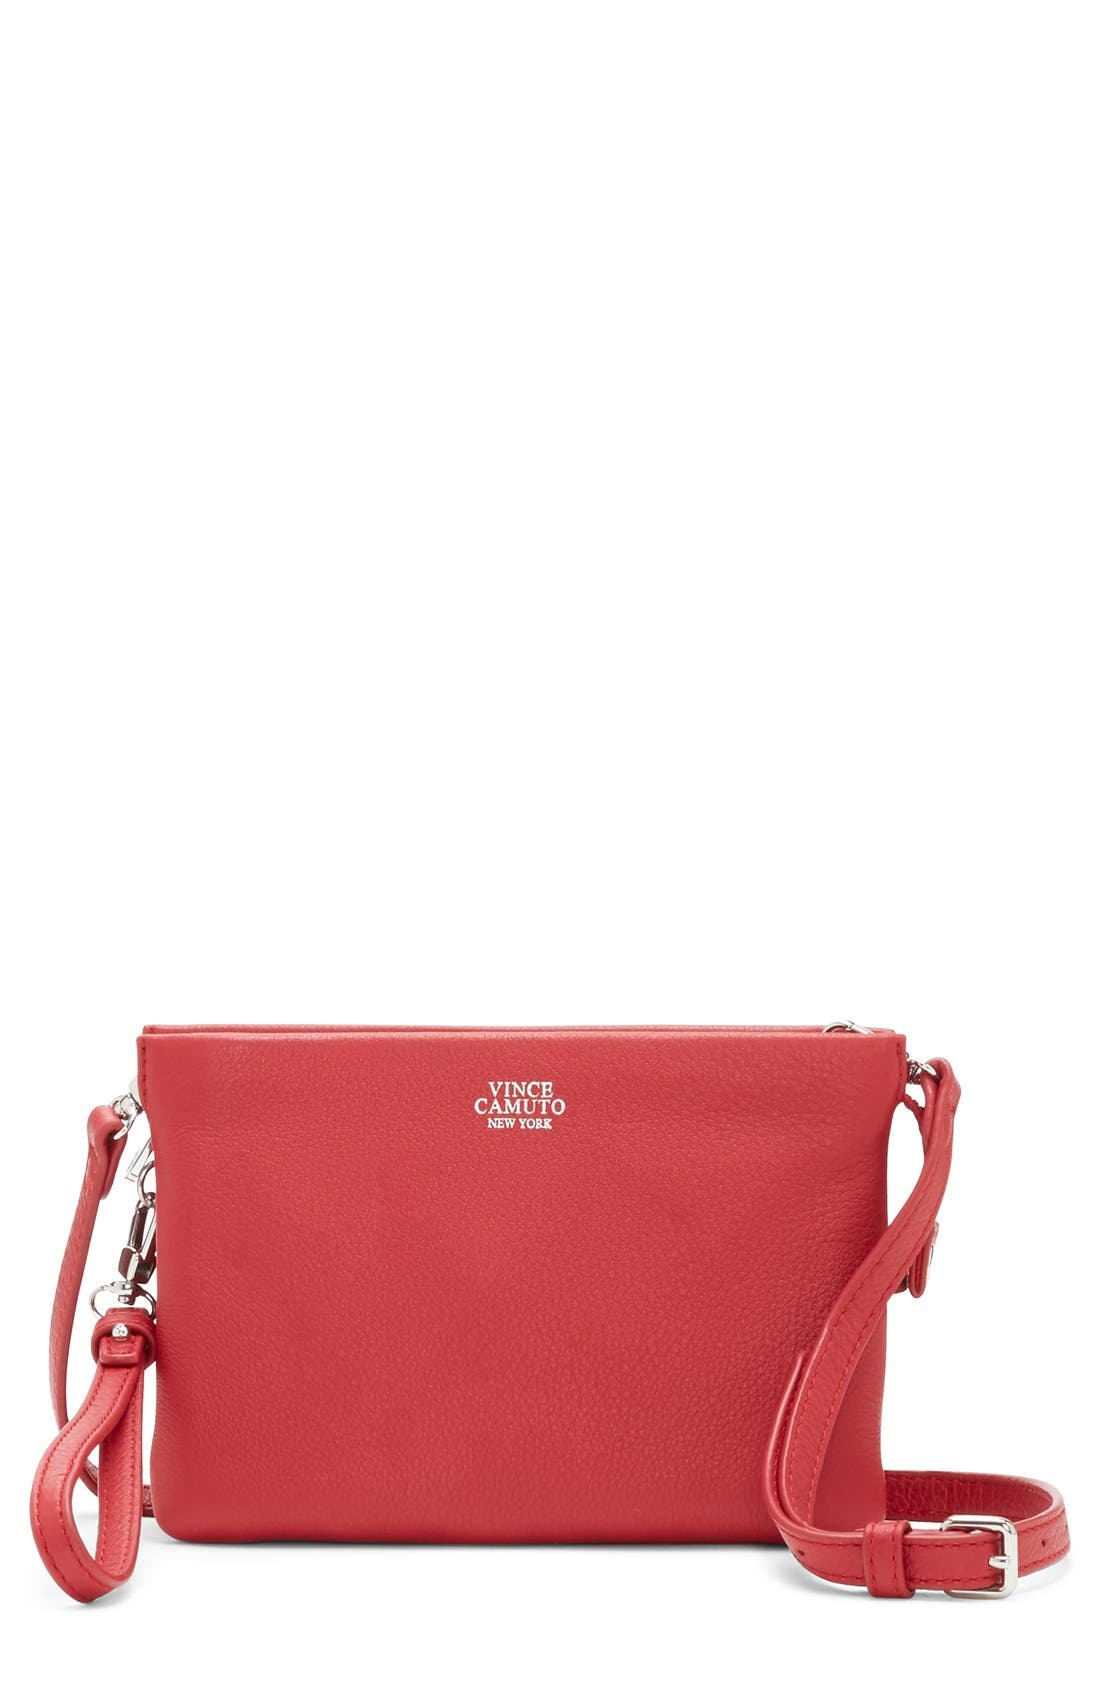 'Cami' Leather Crossbody Bag,                             Main thumbnail 31, color,